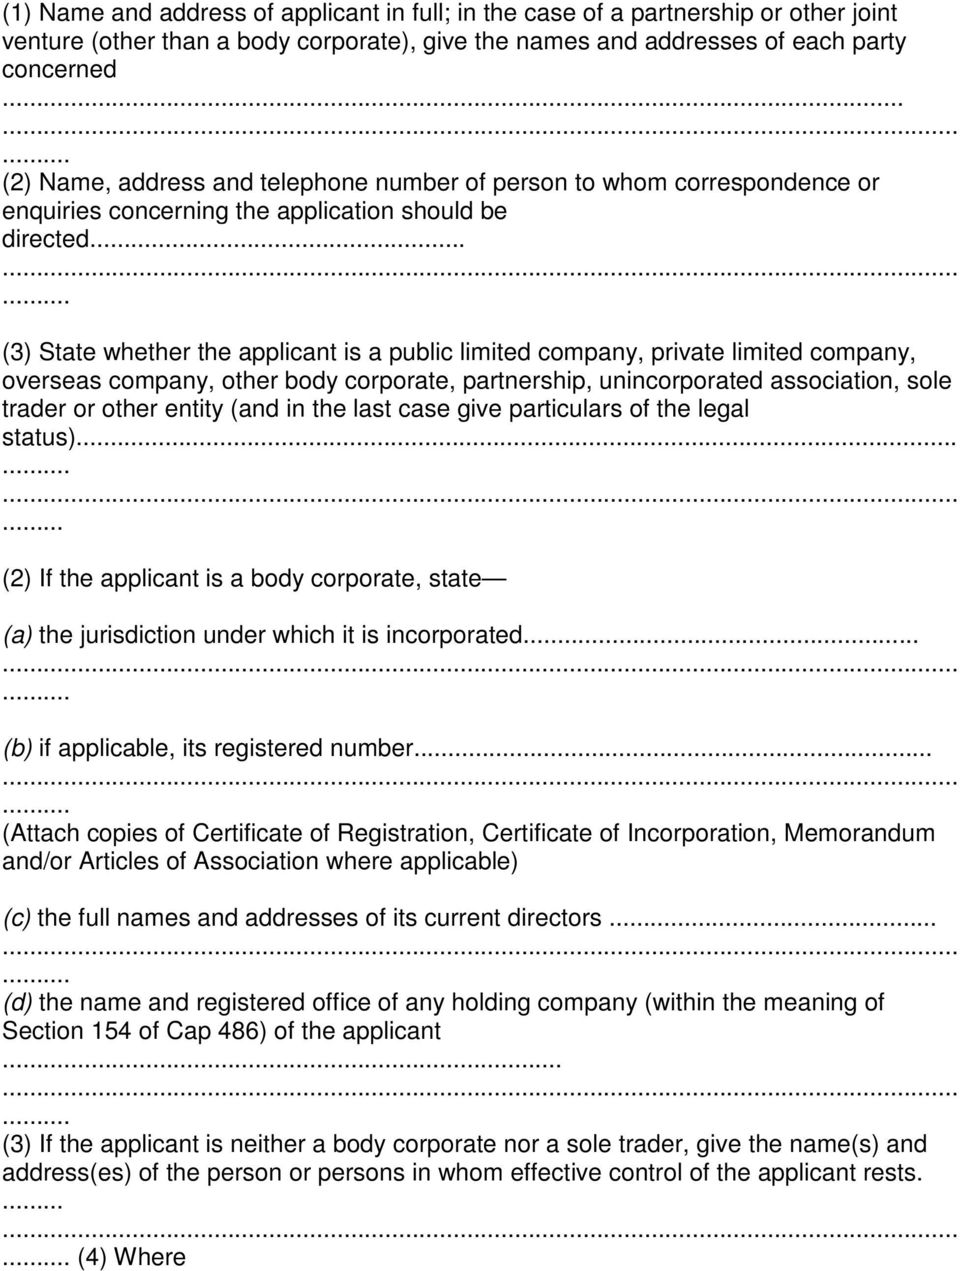 .. (3) State whether the applicant is a public limited company, private limited company, overseas company, other body corporate, partnership, unincorporated association, sole trader or other entity